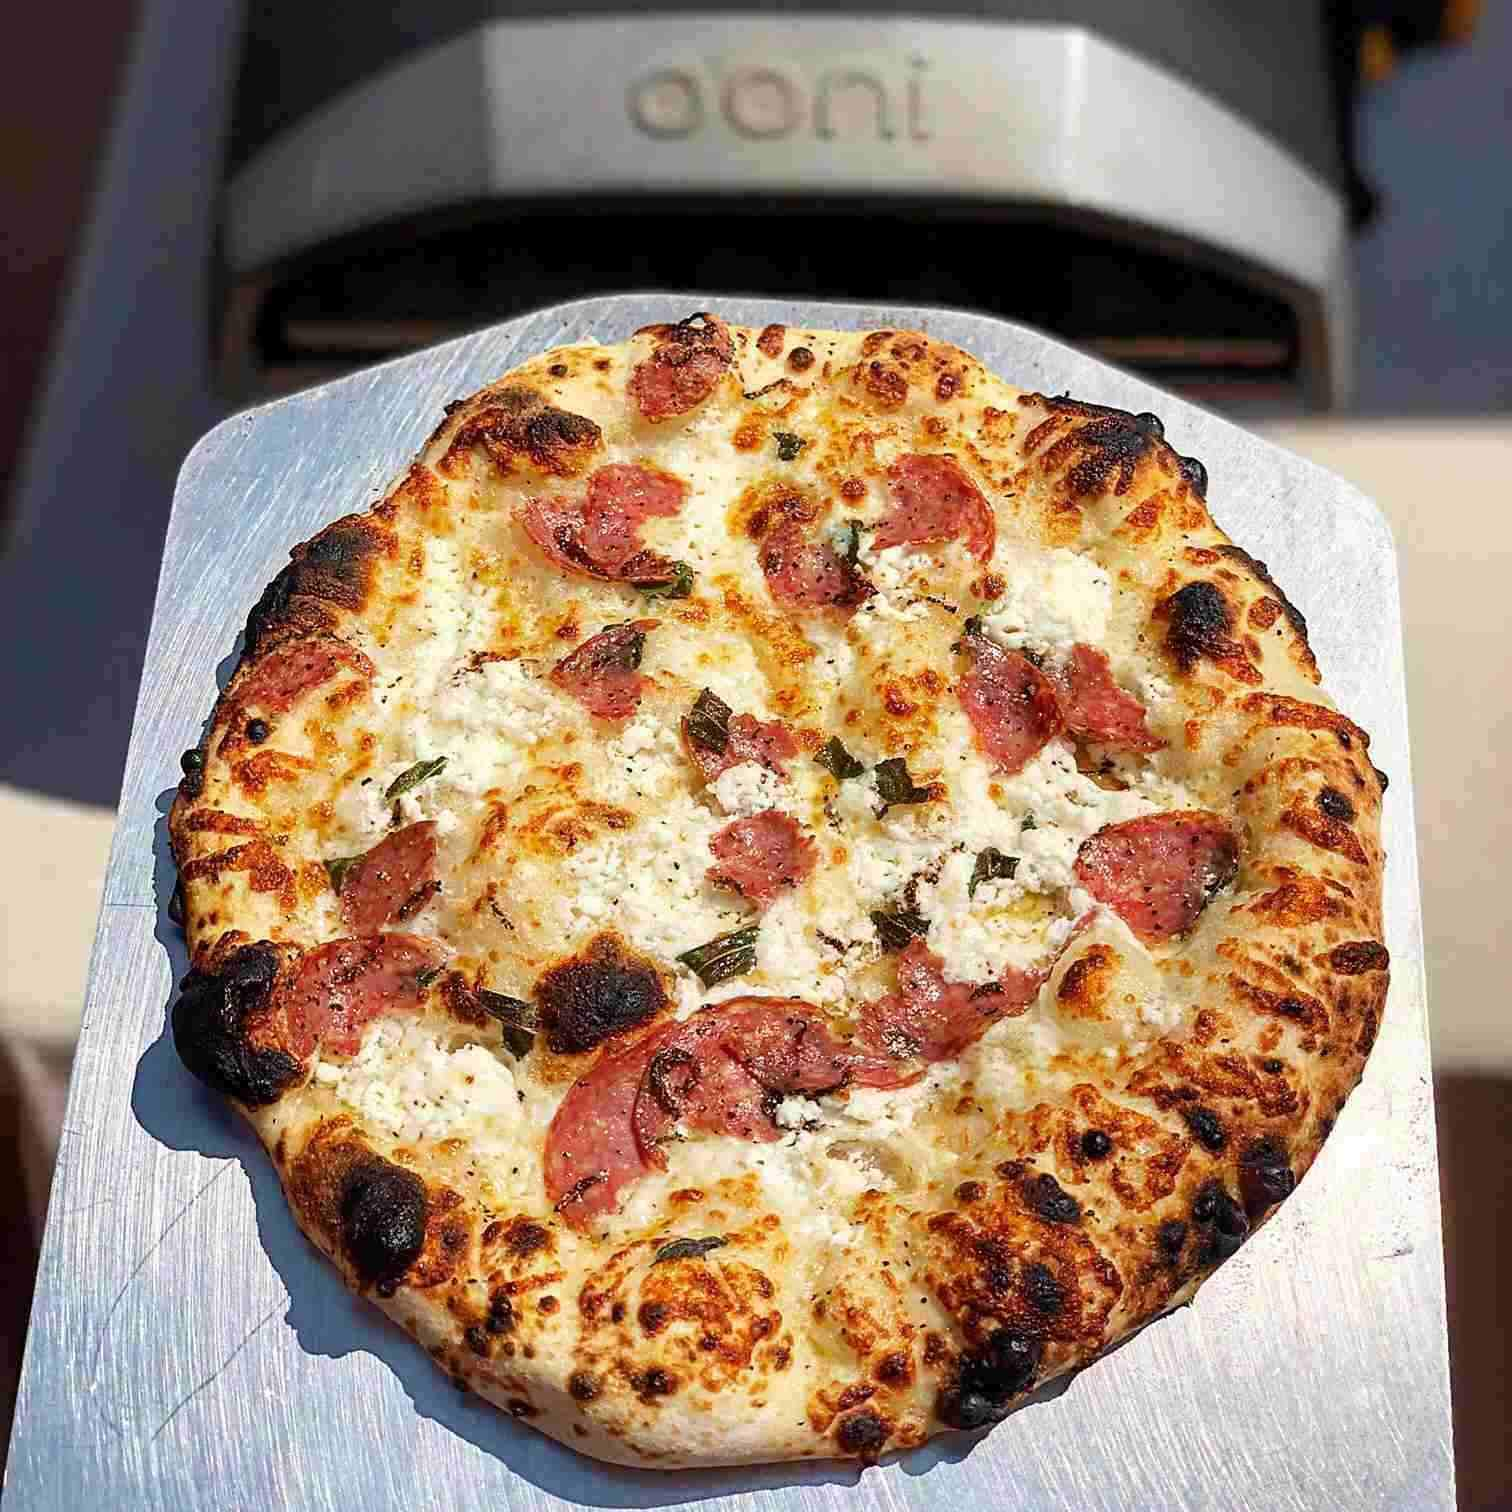 Salami, Goat's Cheese & Hot Honey White Pizza Featured Image